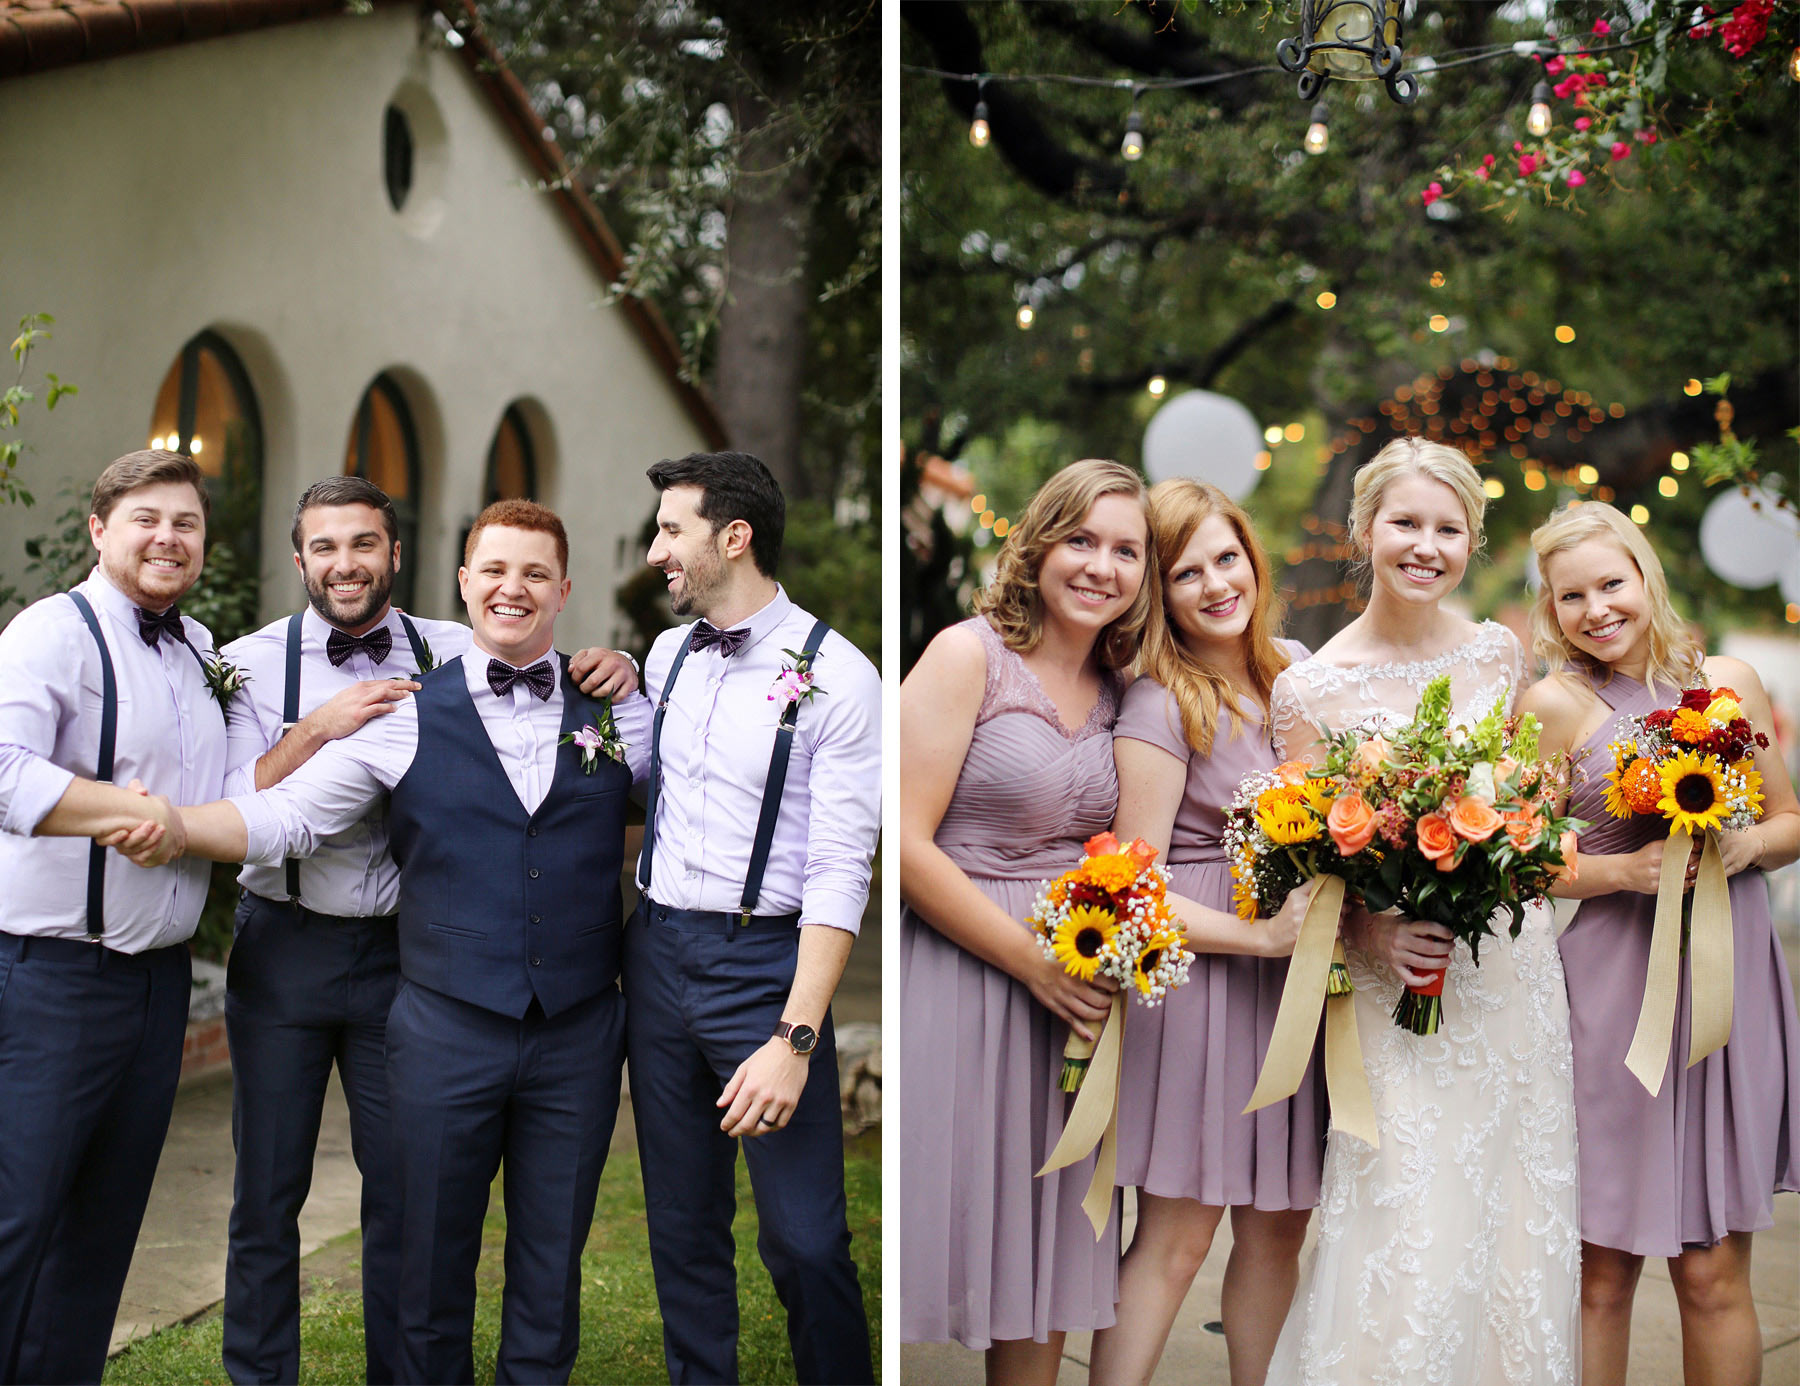 04-La-Canada-Flintridge-California-Wedding-Photographer-by-Andrew-Vick-Photography-Fall-Autumn-Destination-Bride-Groom-Bridal-Party-Bridesmaids-Groomsmen-Flowers-Fawn-and-Jay.jpg